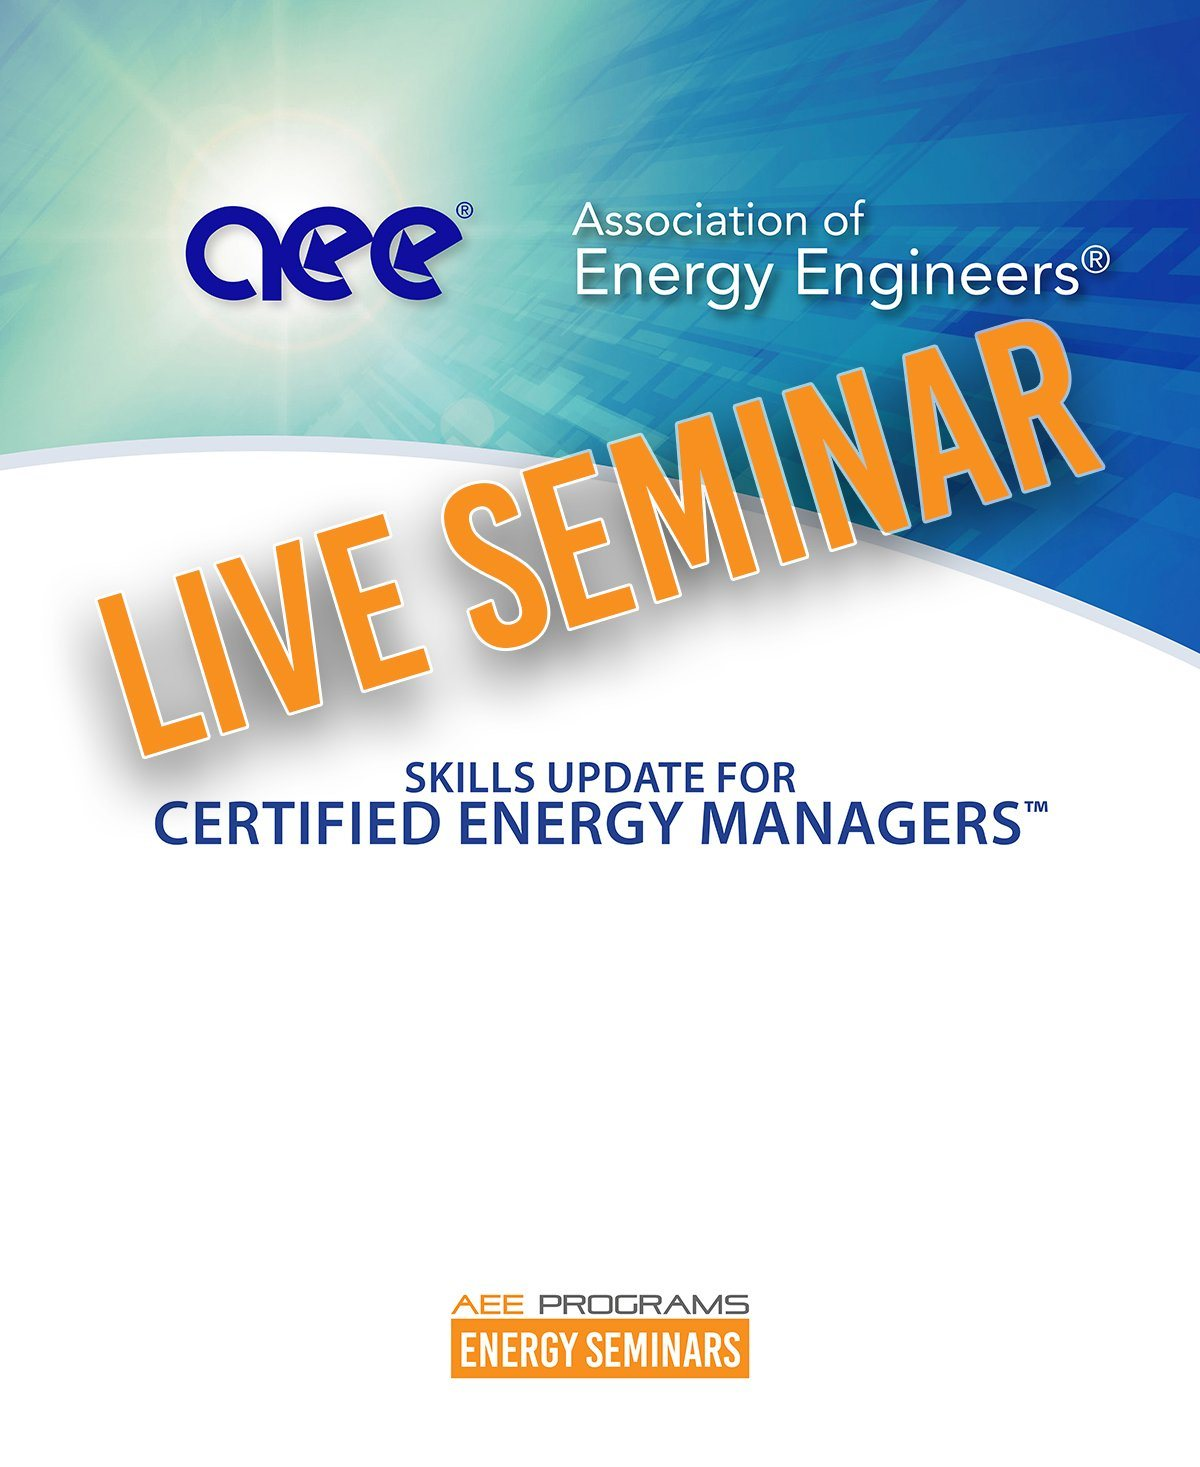 Skills Update 2019 For Certified Energy Managers™